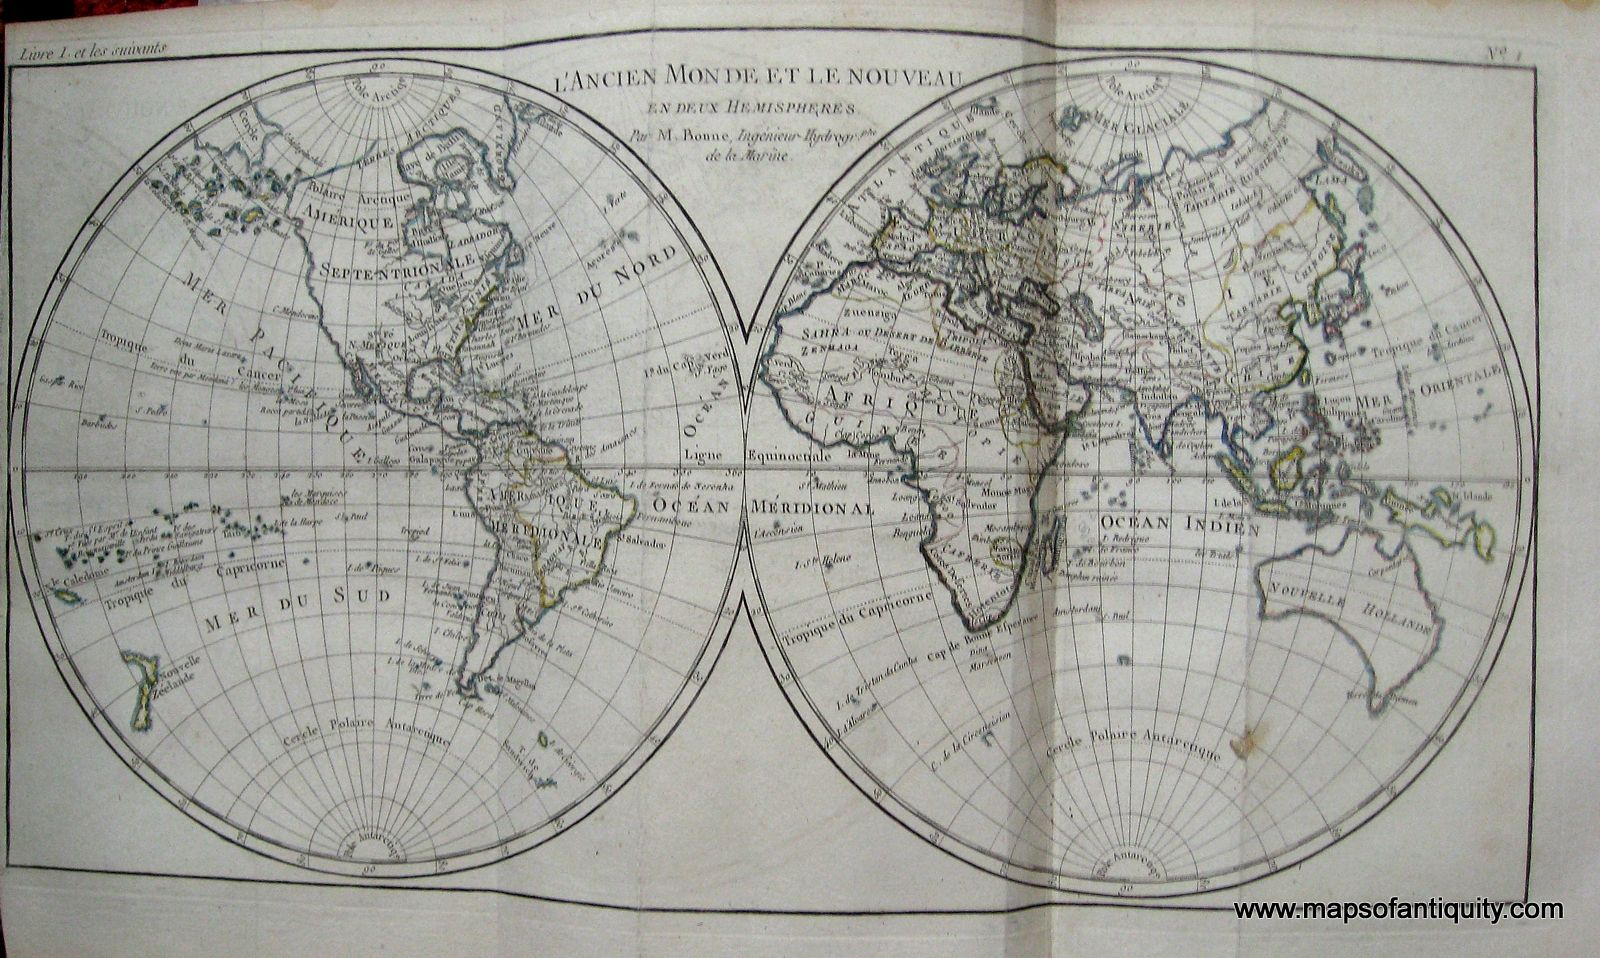 """The Old World and the New, in two hemispheres."" From the Atlas of All Known Parts of Globe, Lists For Philosophical History and Policy establishments and Trade of the Europeans in the two Indies)."" by Raynal and Bonne, 1780. Excellent condition, approx. 8.5 x 12.5 inches. Maker: Raynal and Bonne $300.00 http://www.mapsofantiquity.com/store/Antique_Maps_-_World/L'Ancien_Monde_et_le_Nouveau,_en_deux_hemispheres./inventory.pl?id=WOR037#.U6Xbo_ldV8E"